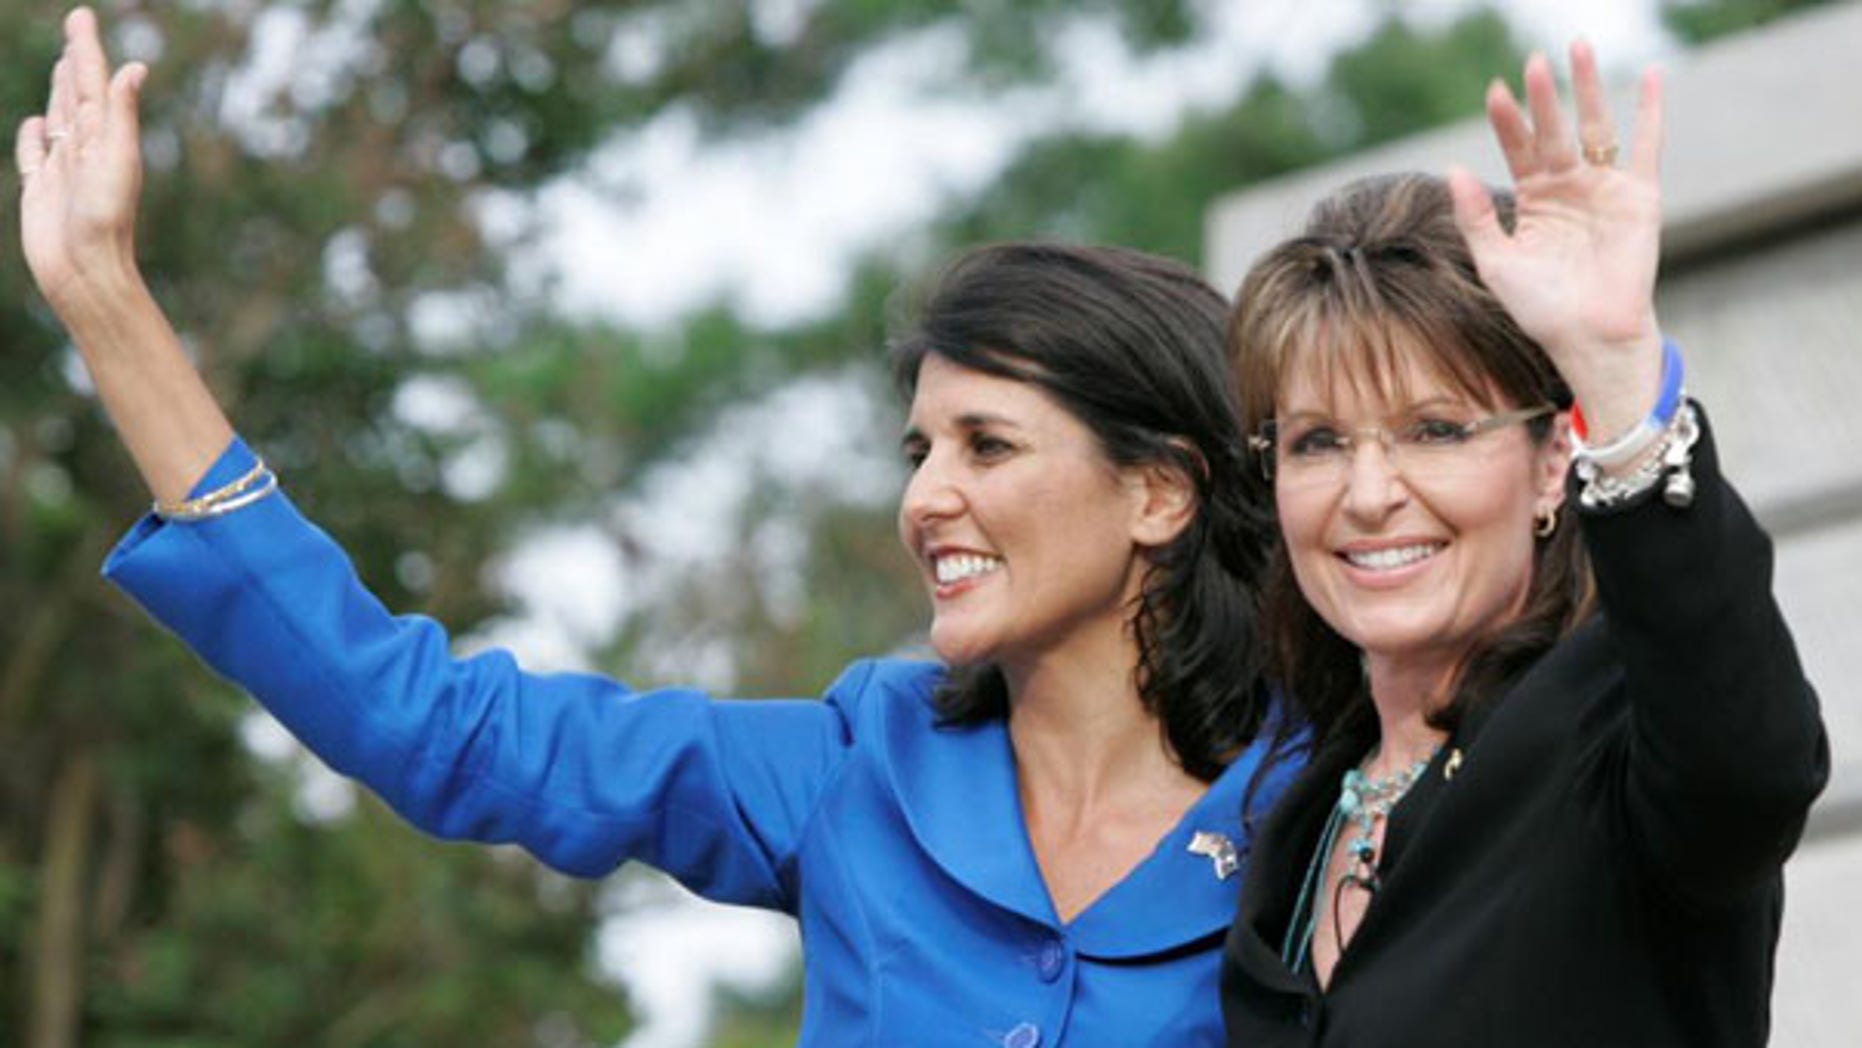 Former Alaska Gov. Sarah Palin waves as she endorses S.C. gubernatorial candidate Nikki Haley May 14 in Columbia, S.C. (AP Photo)